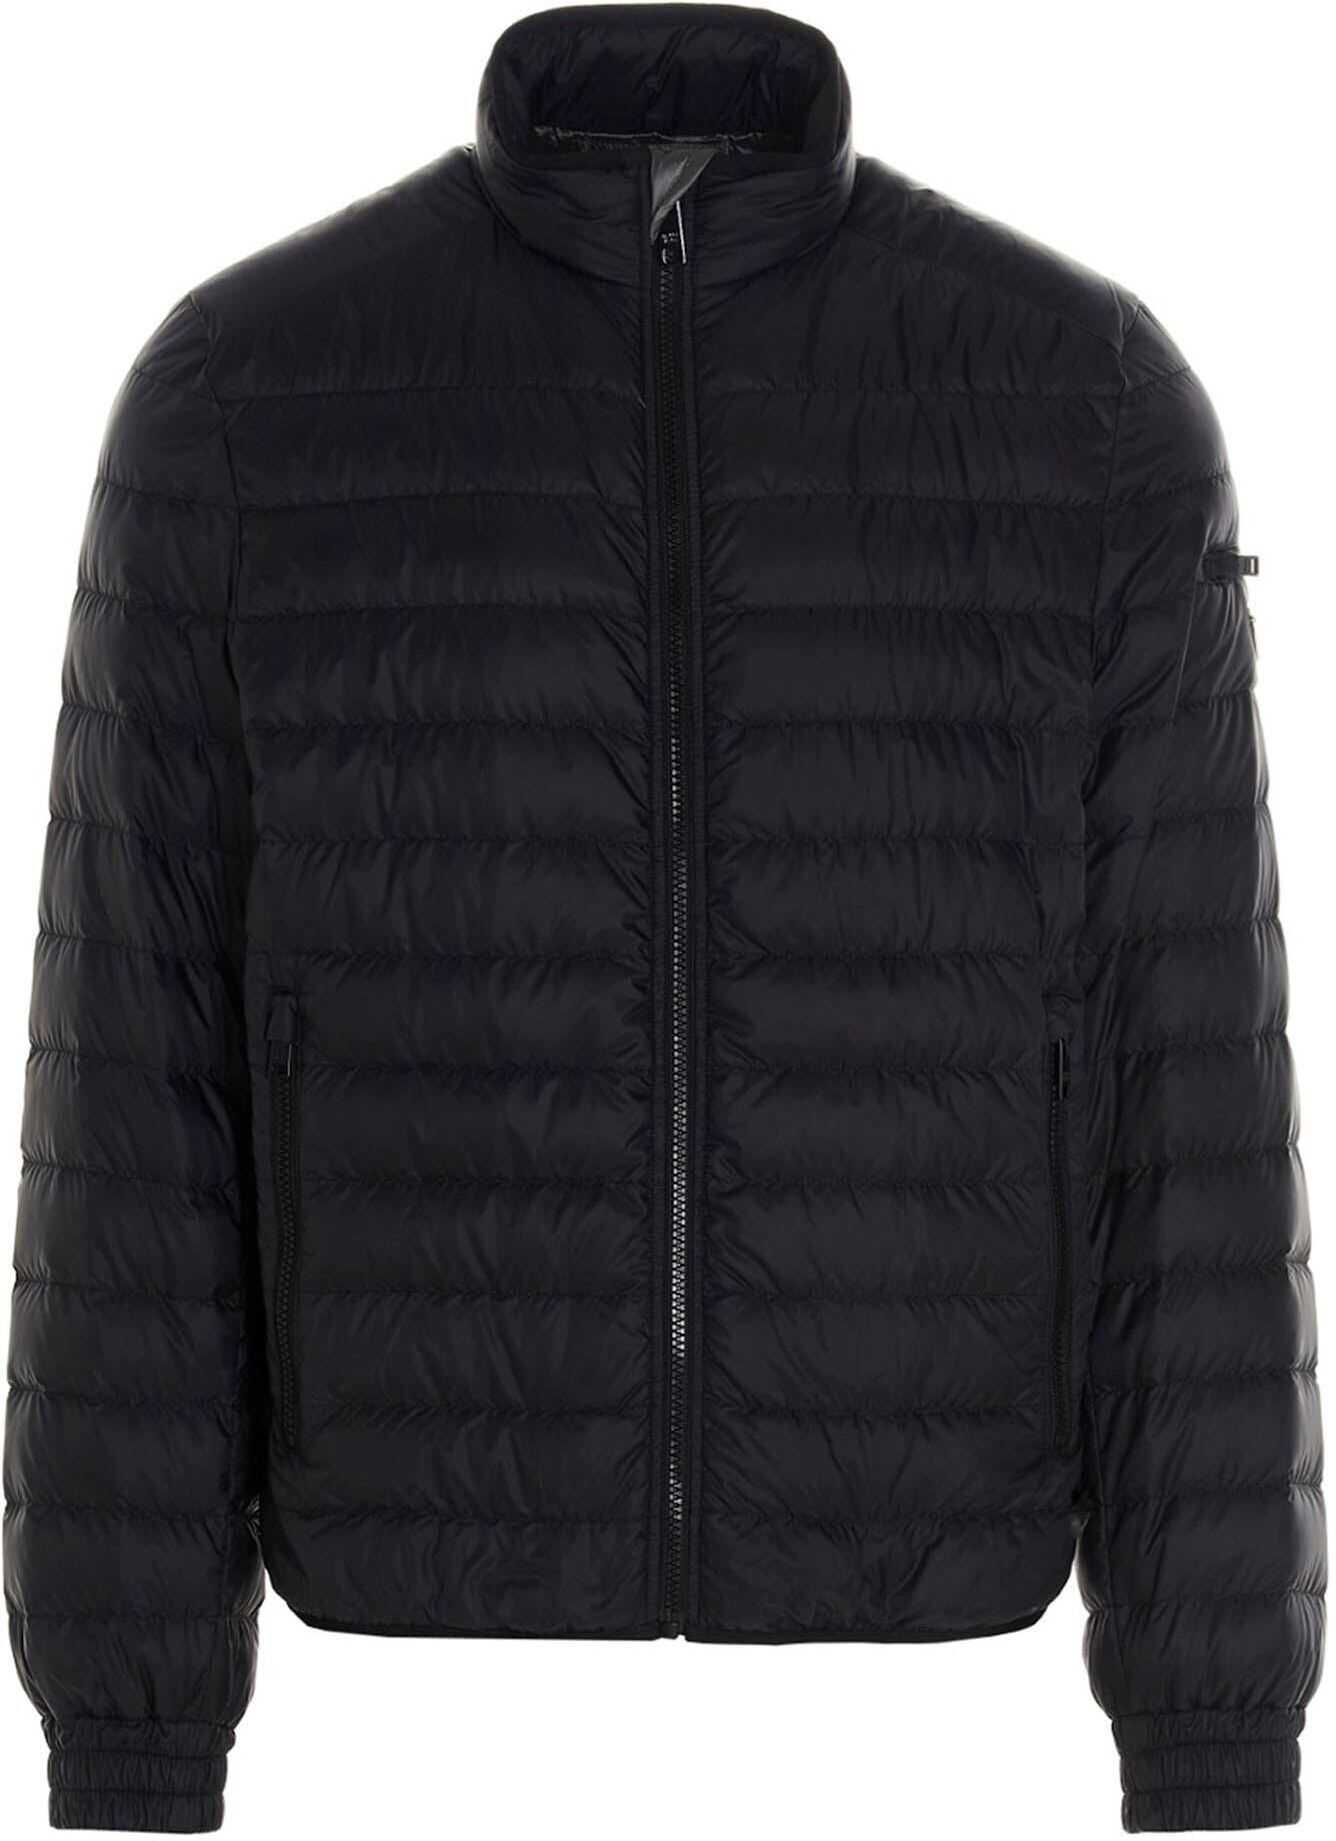 Prada Technical Eggshell Jacket In Black Black imagine